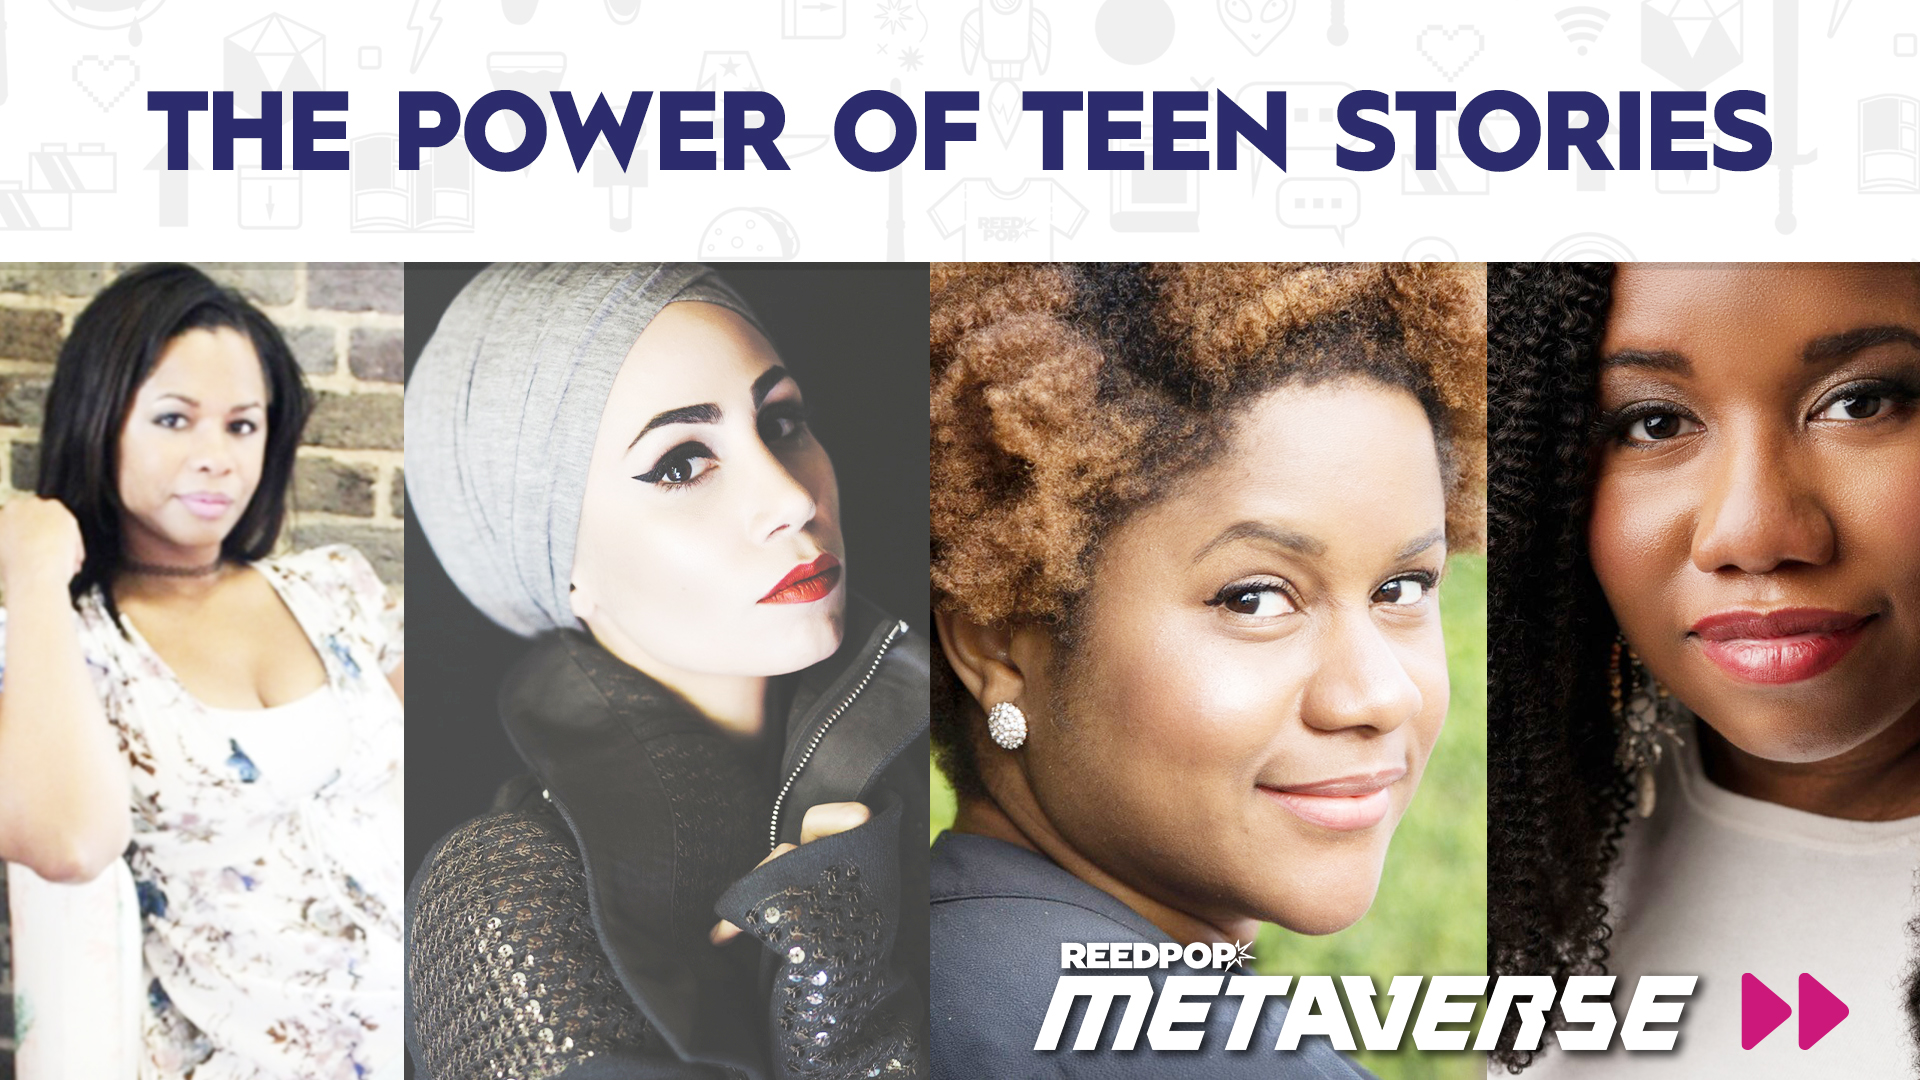 Image for Past, Present, Future - The Power of Teen Stories